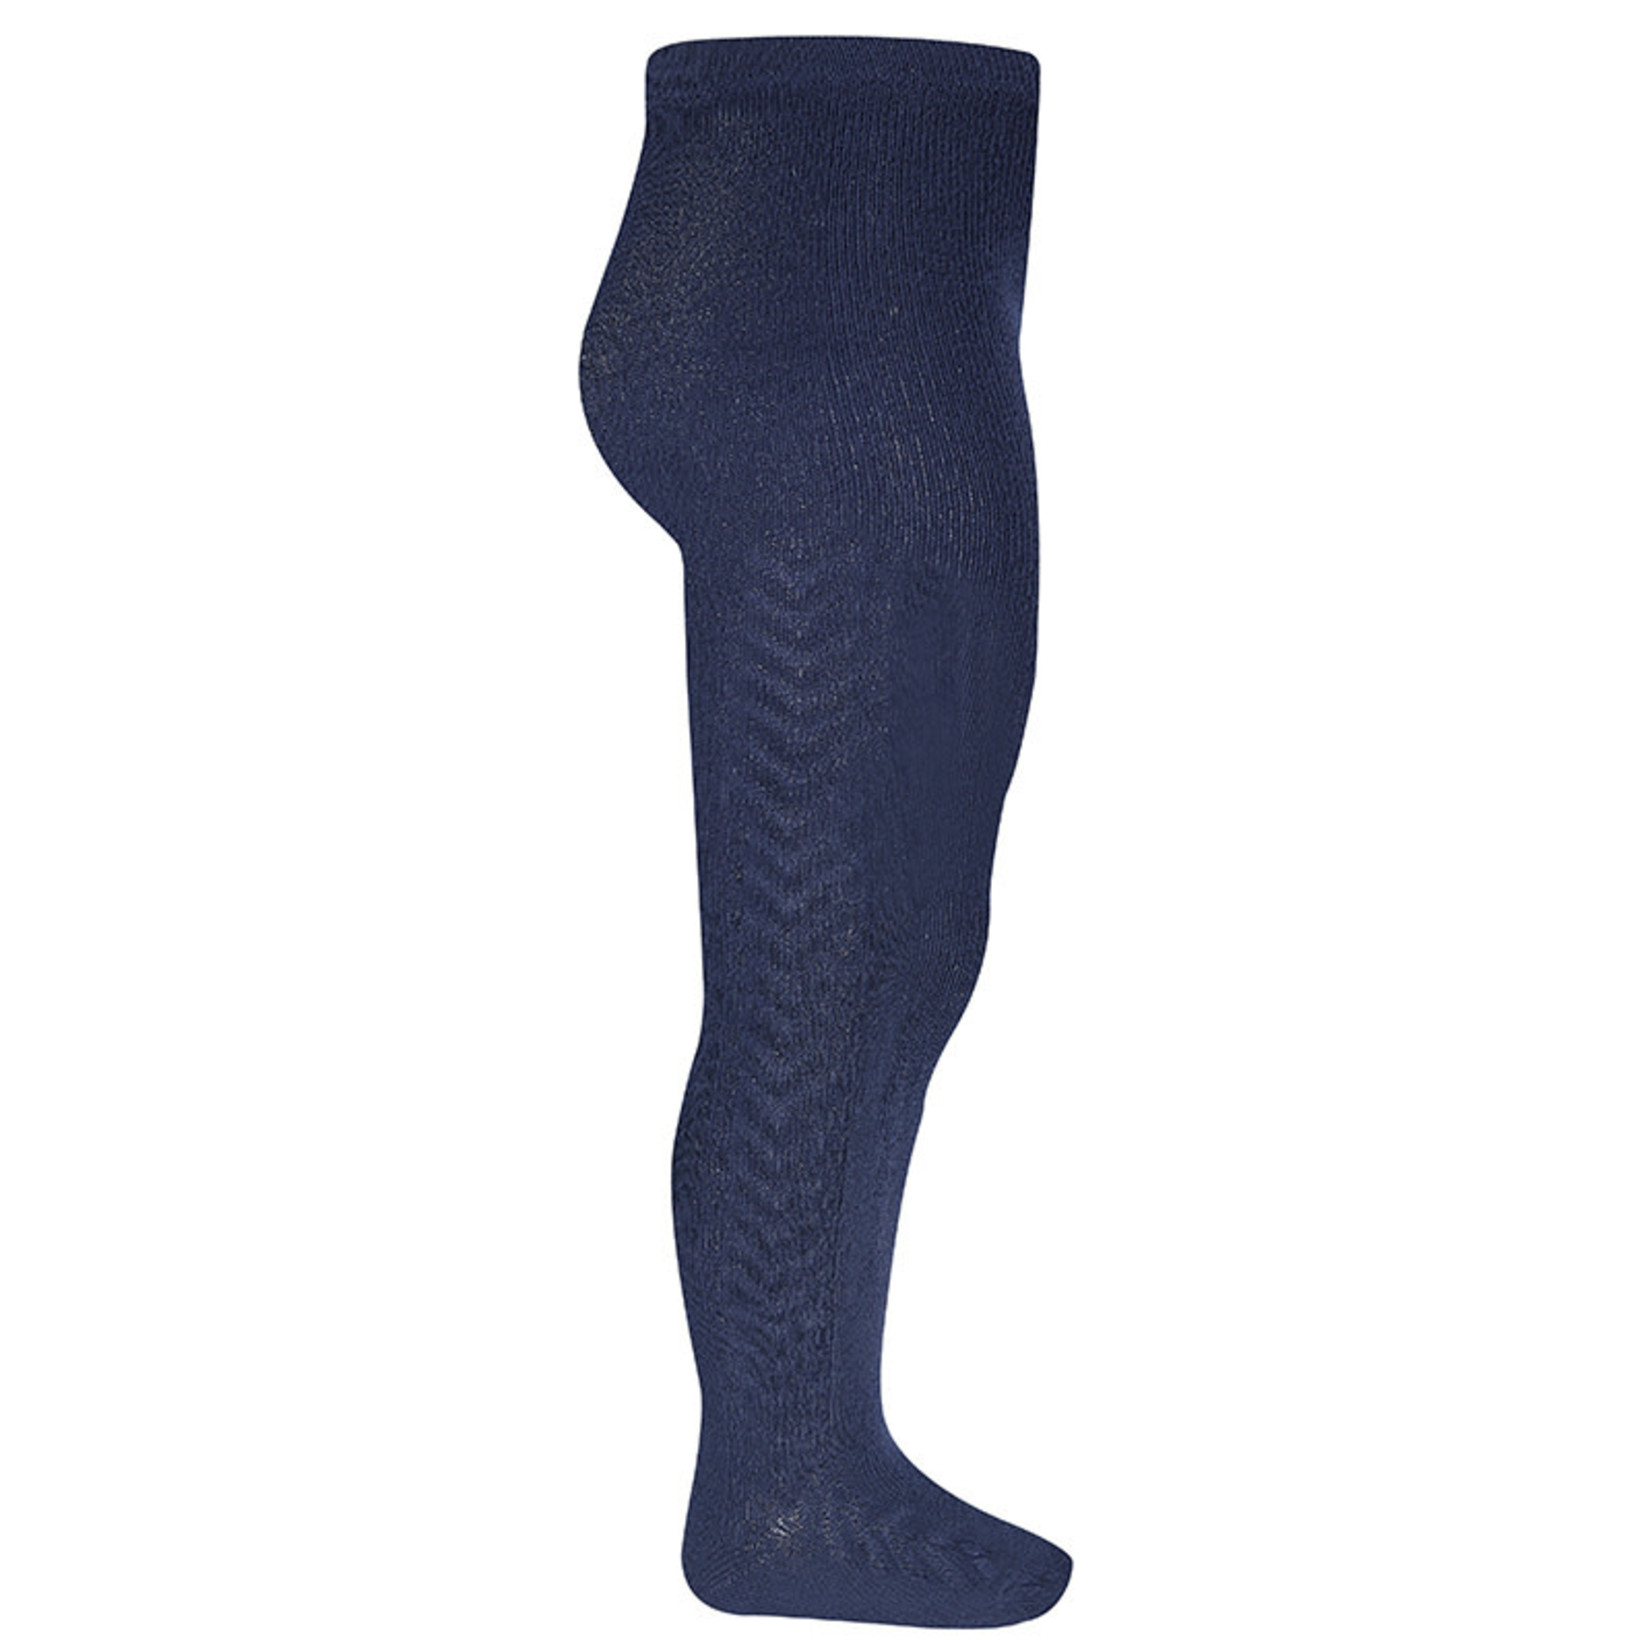 Condor Side Patterned Tights - Navy